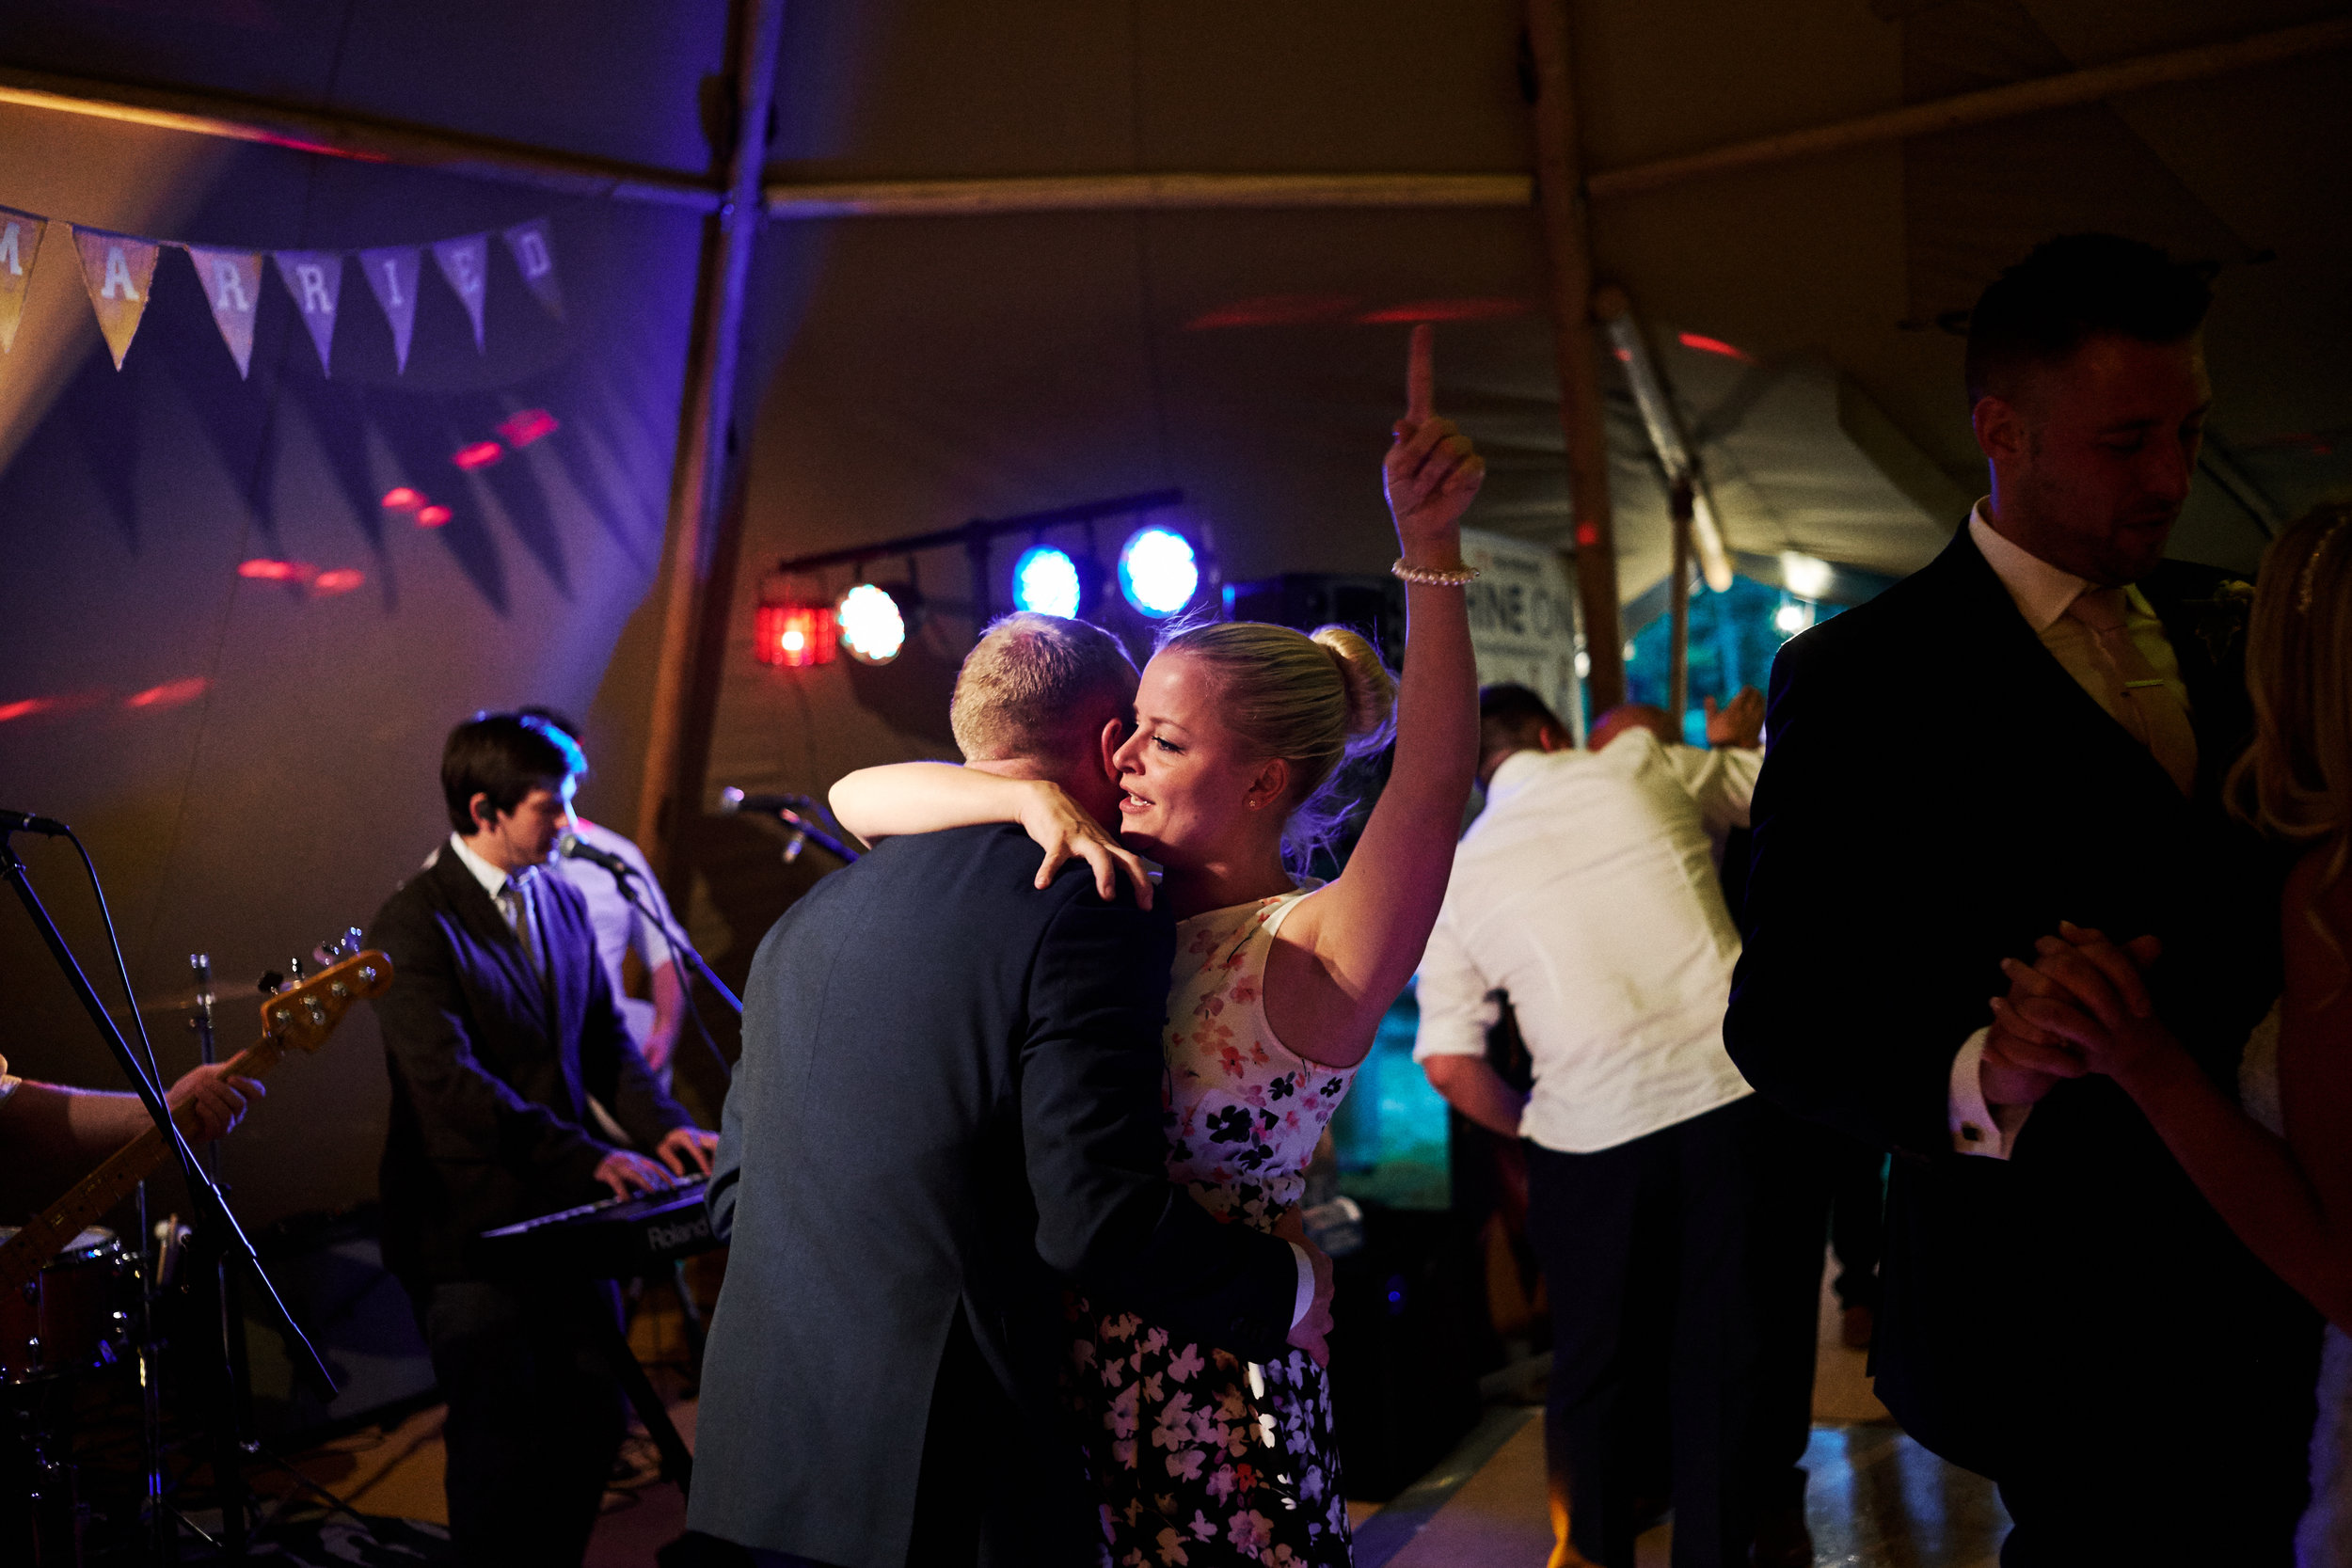 ADDITIONAL HOURS £108 - Maybe you just need that extra hour at your wedding. It also means we can get some more fantastic portraits in the darkness. Or more photos on the dance floor.